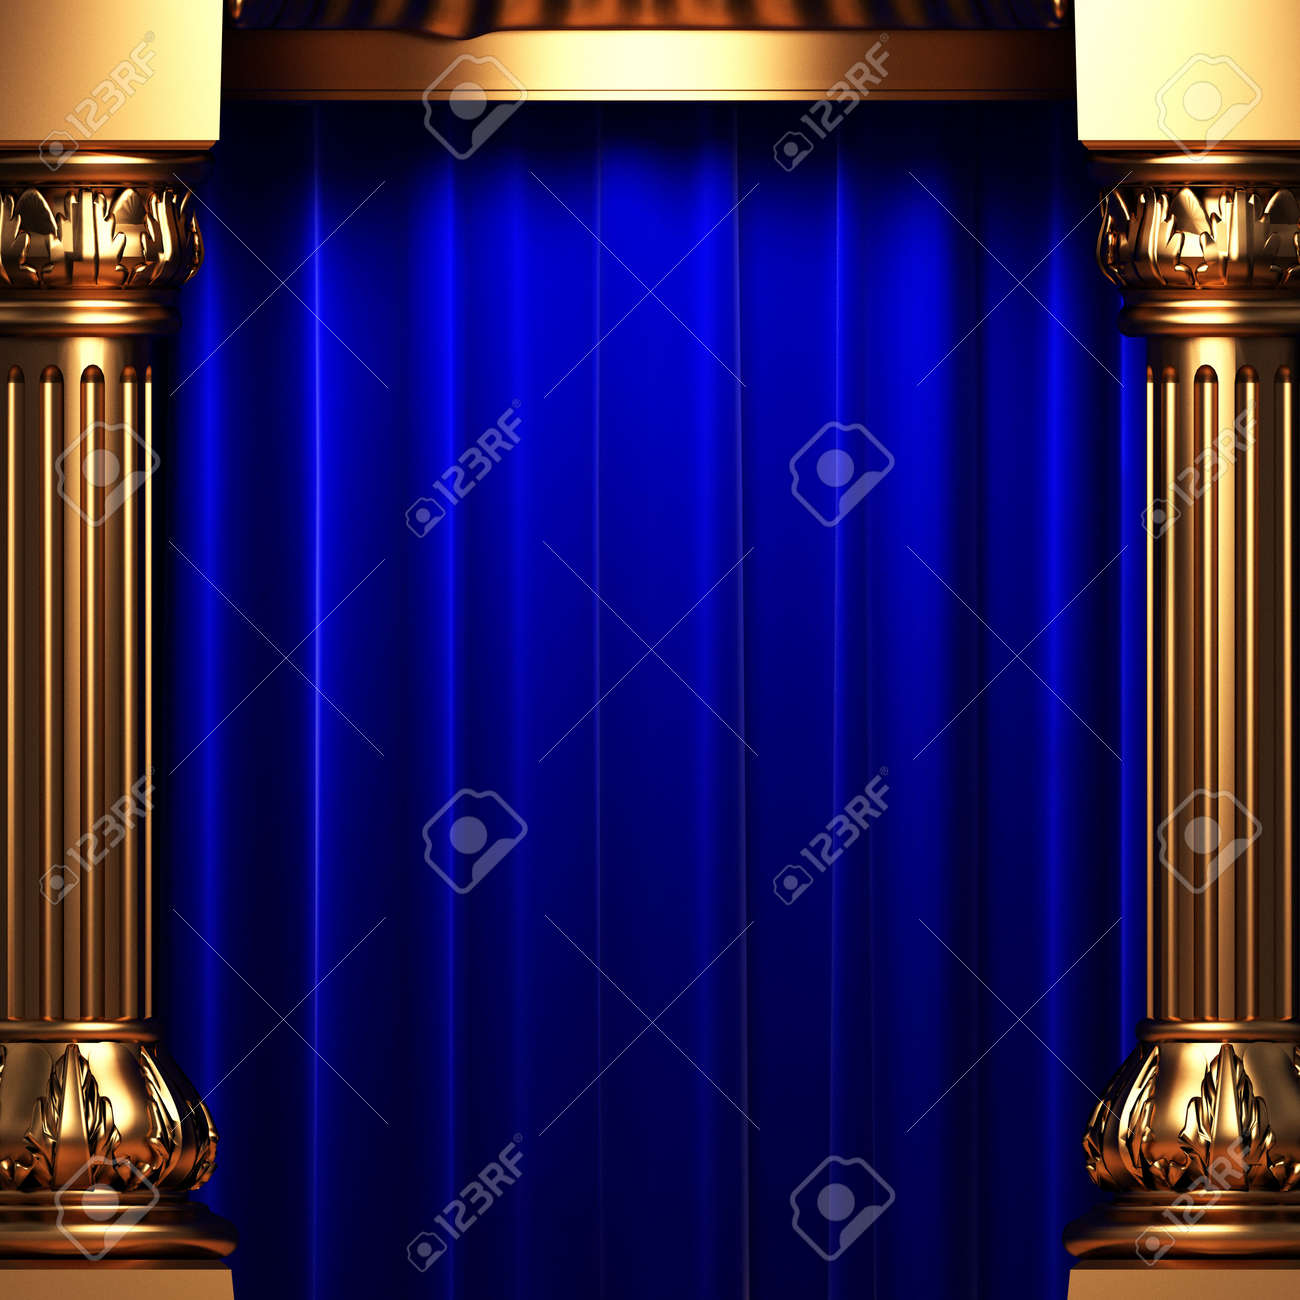 Bl blue stage curtains background - Blue Velvet Curtains Behind The Gold Columns Stock Photo Picture Stock Photo Blue Velvet Curtains Behind